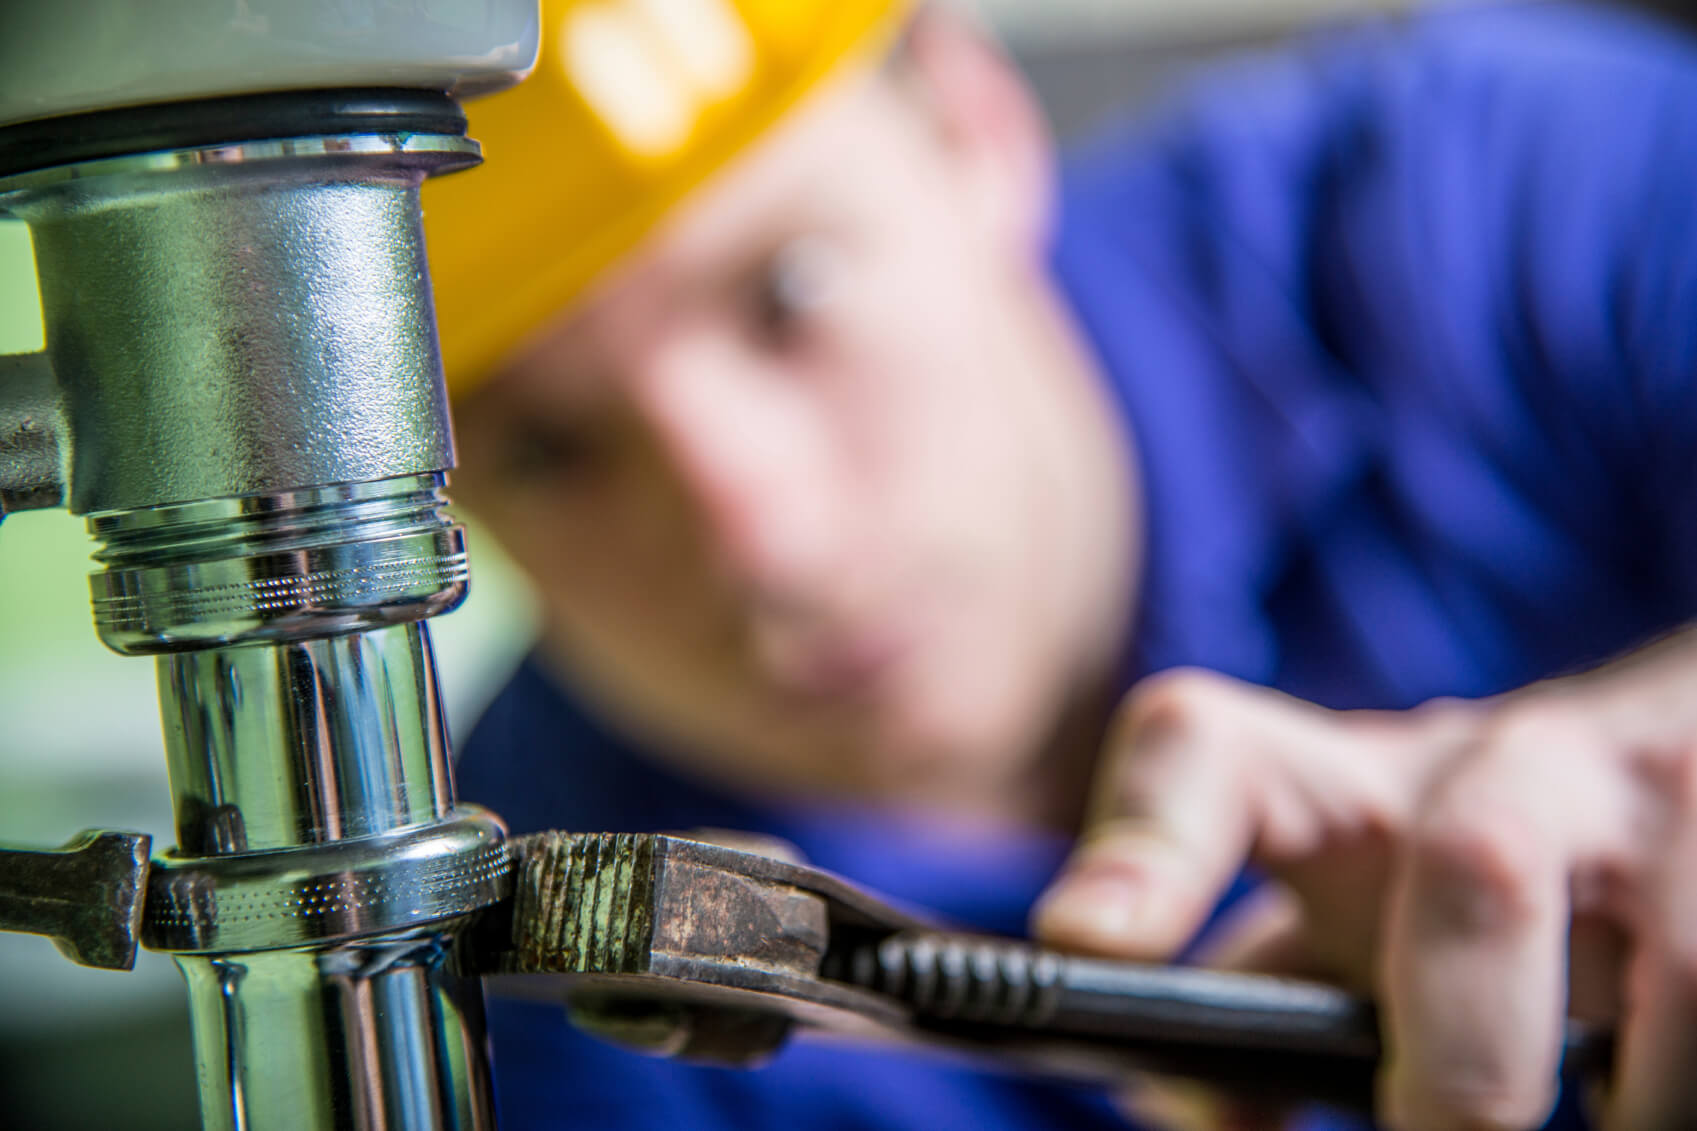 How To Get A Plumbing License In QLD